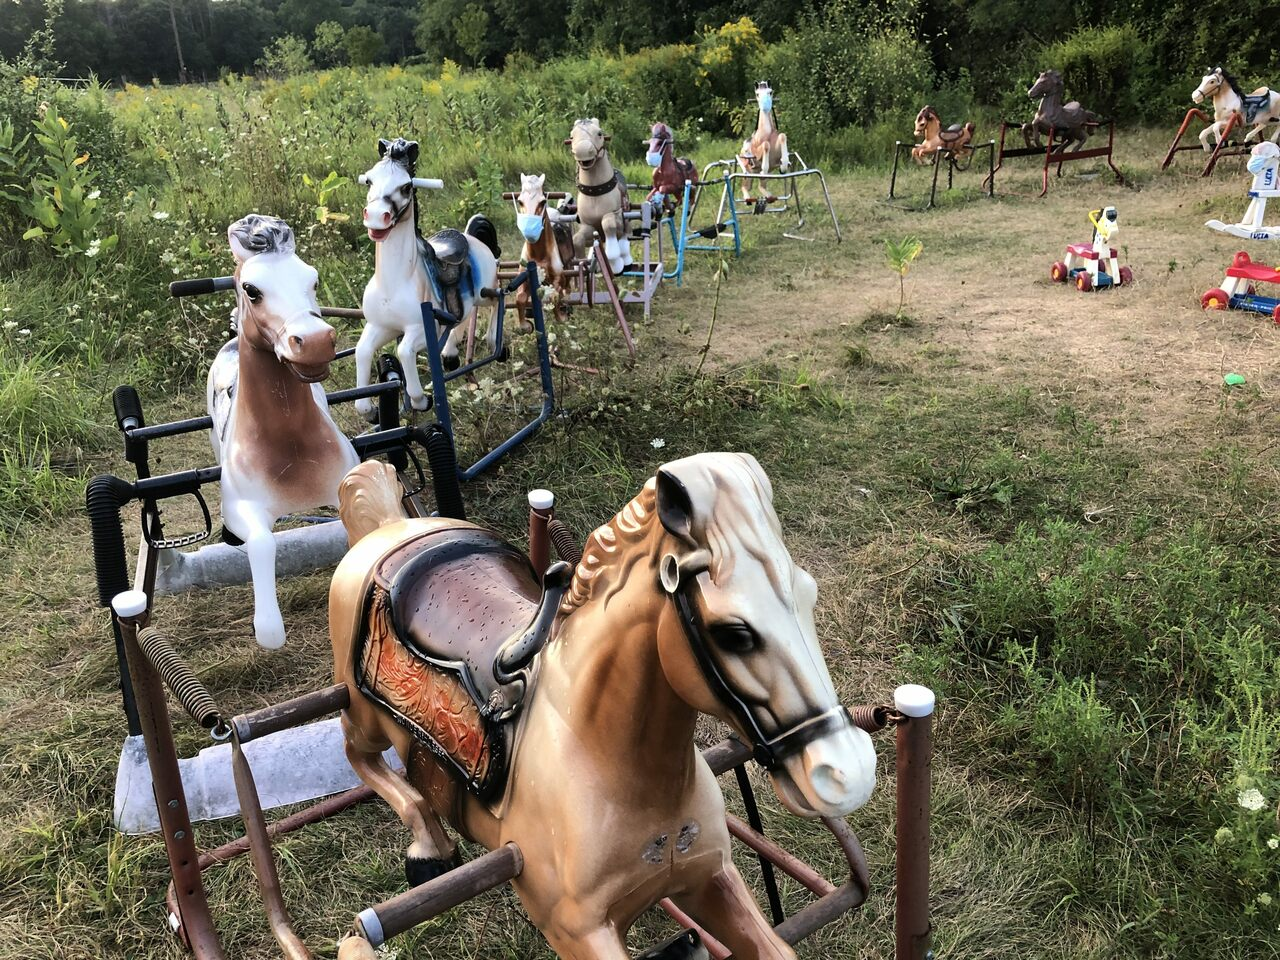 Toy horses can mask and social distance, too.